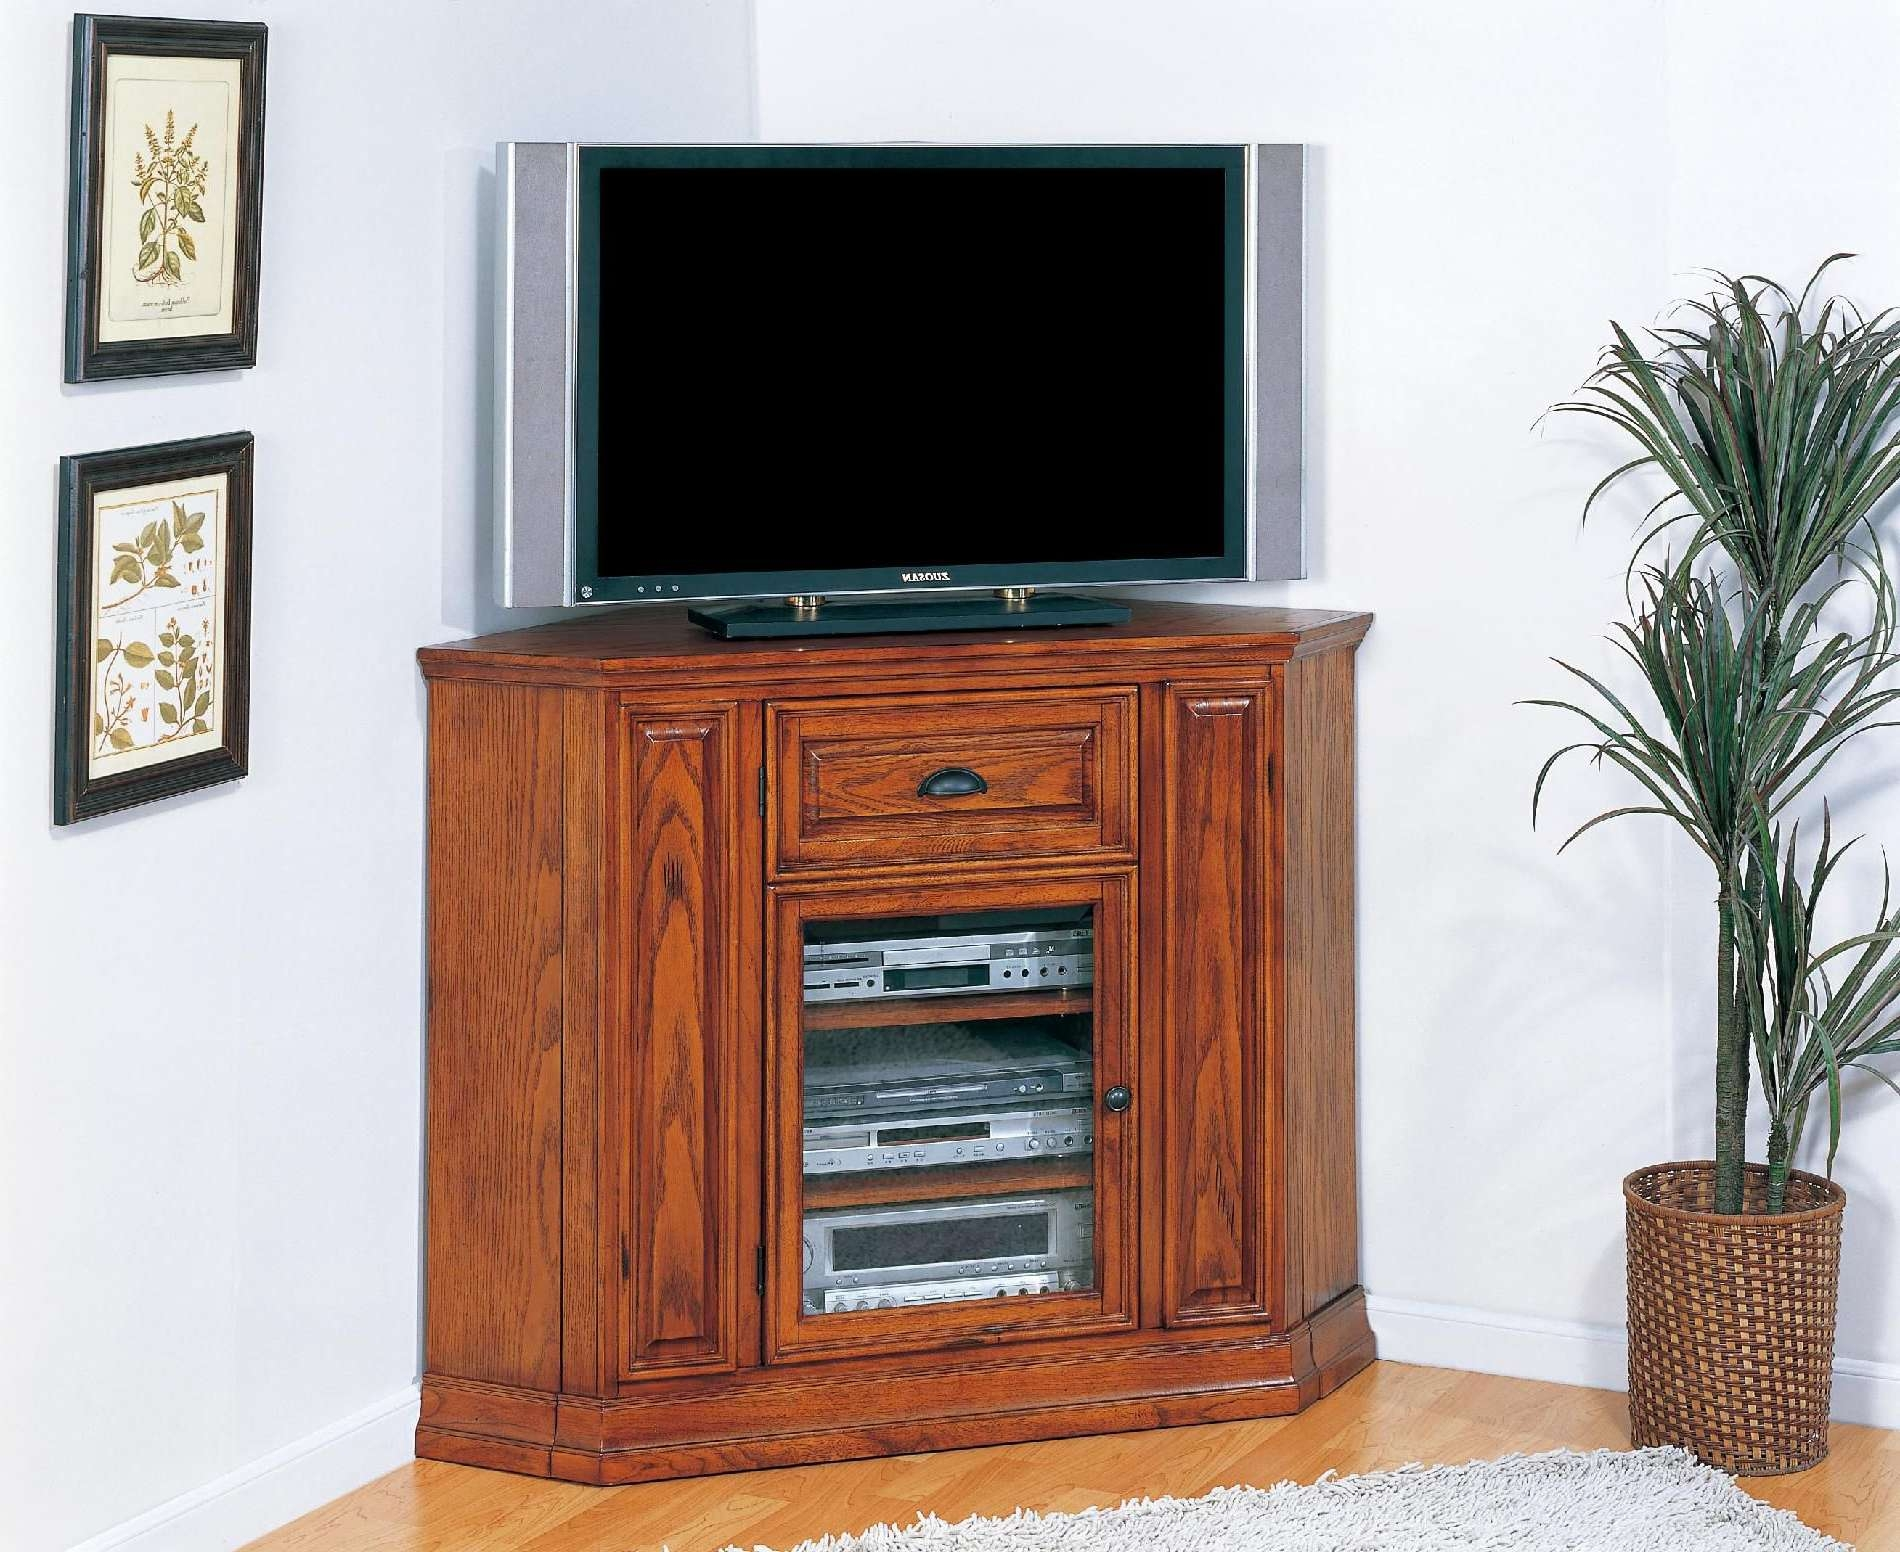 Tv Stand : Tall Narrow Tv Stands For Flat Screens And Standstall Within Corner Oak Tv Stands For Flat Screen (View 5 of 15)